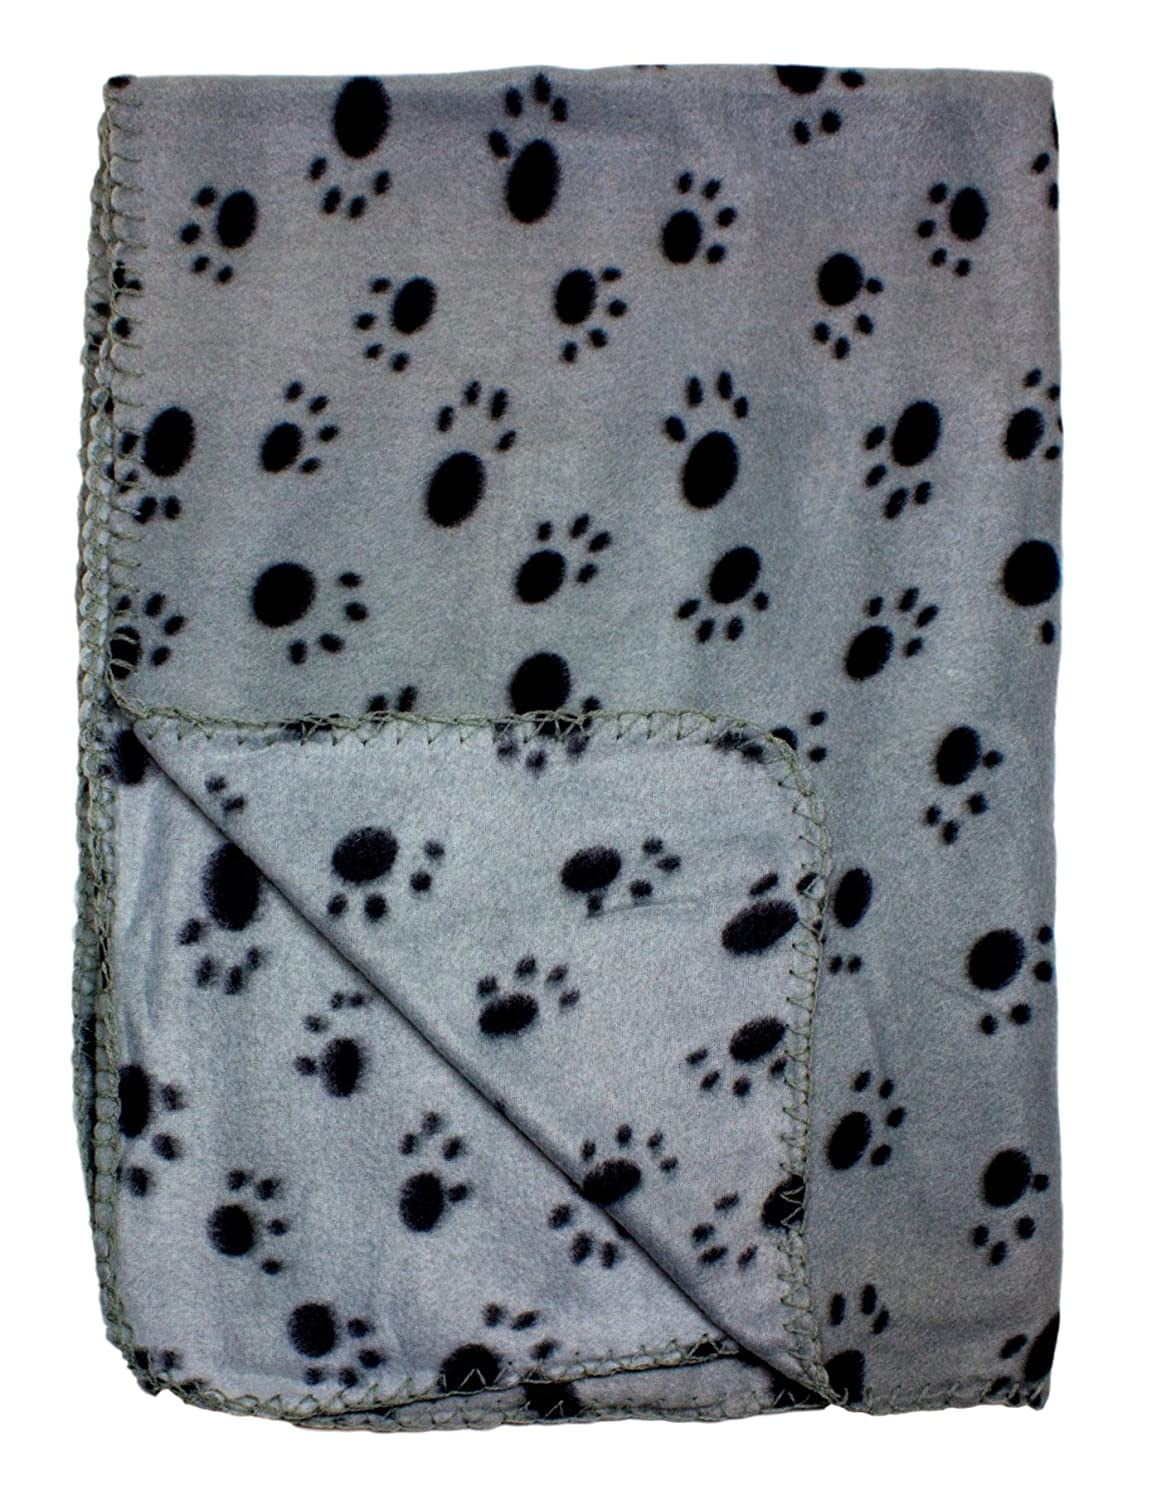 Fleece Pet Blanket/Throw with Paw Print Design 39x27 Inches For Small Animals by bogo Brands